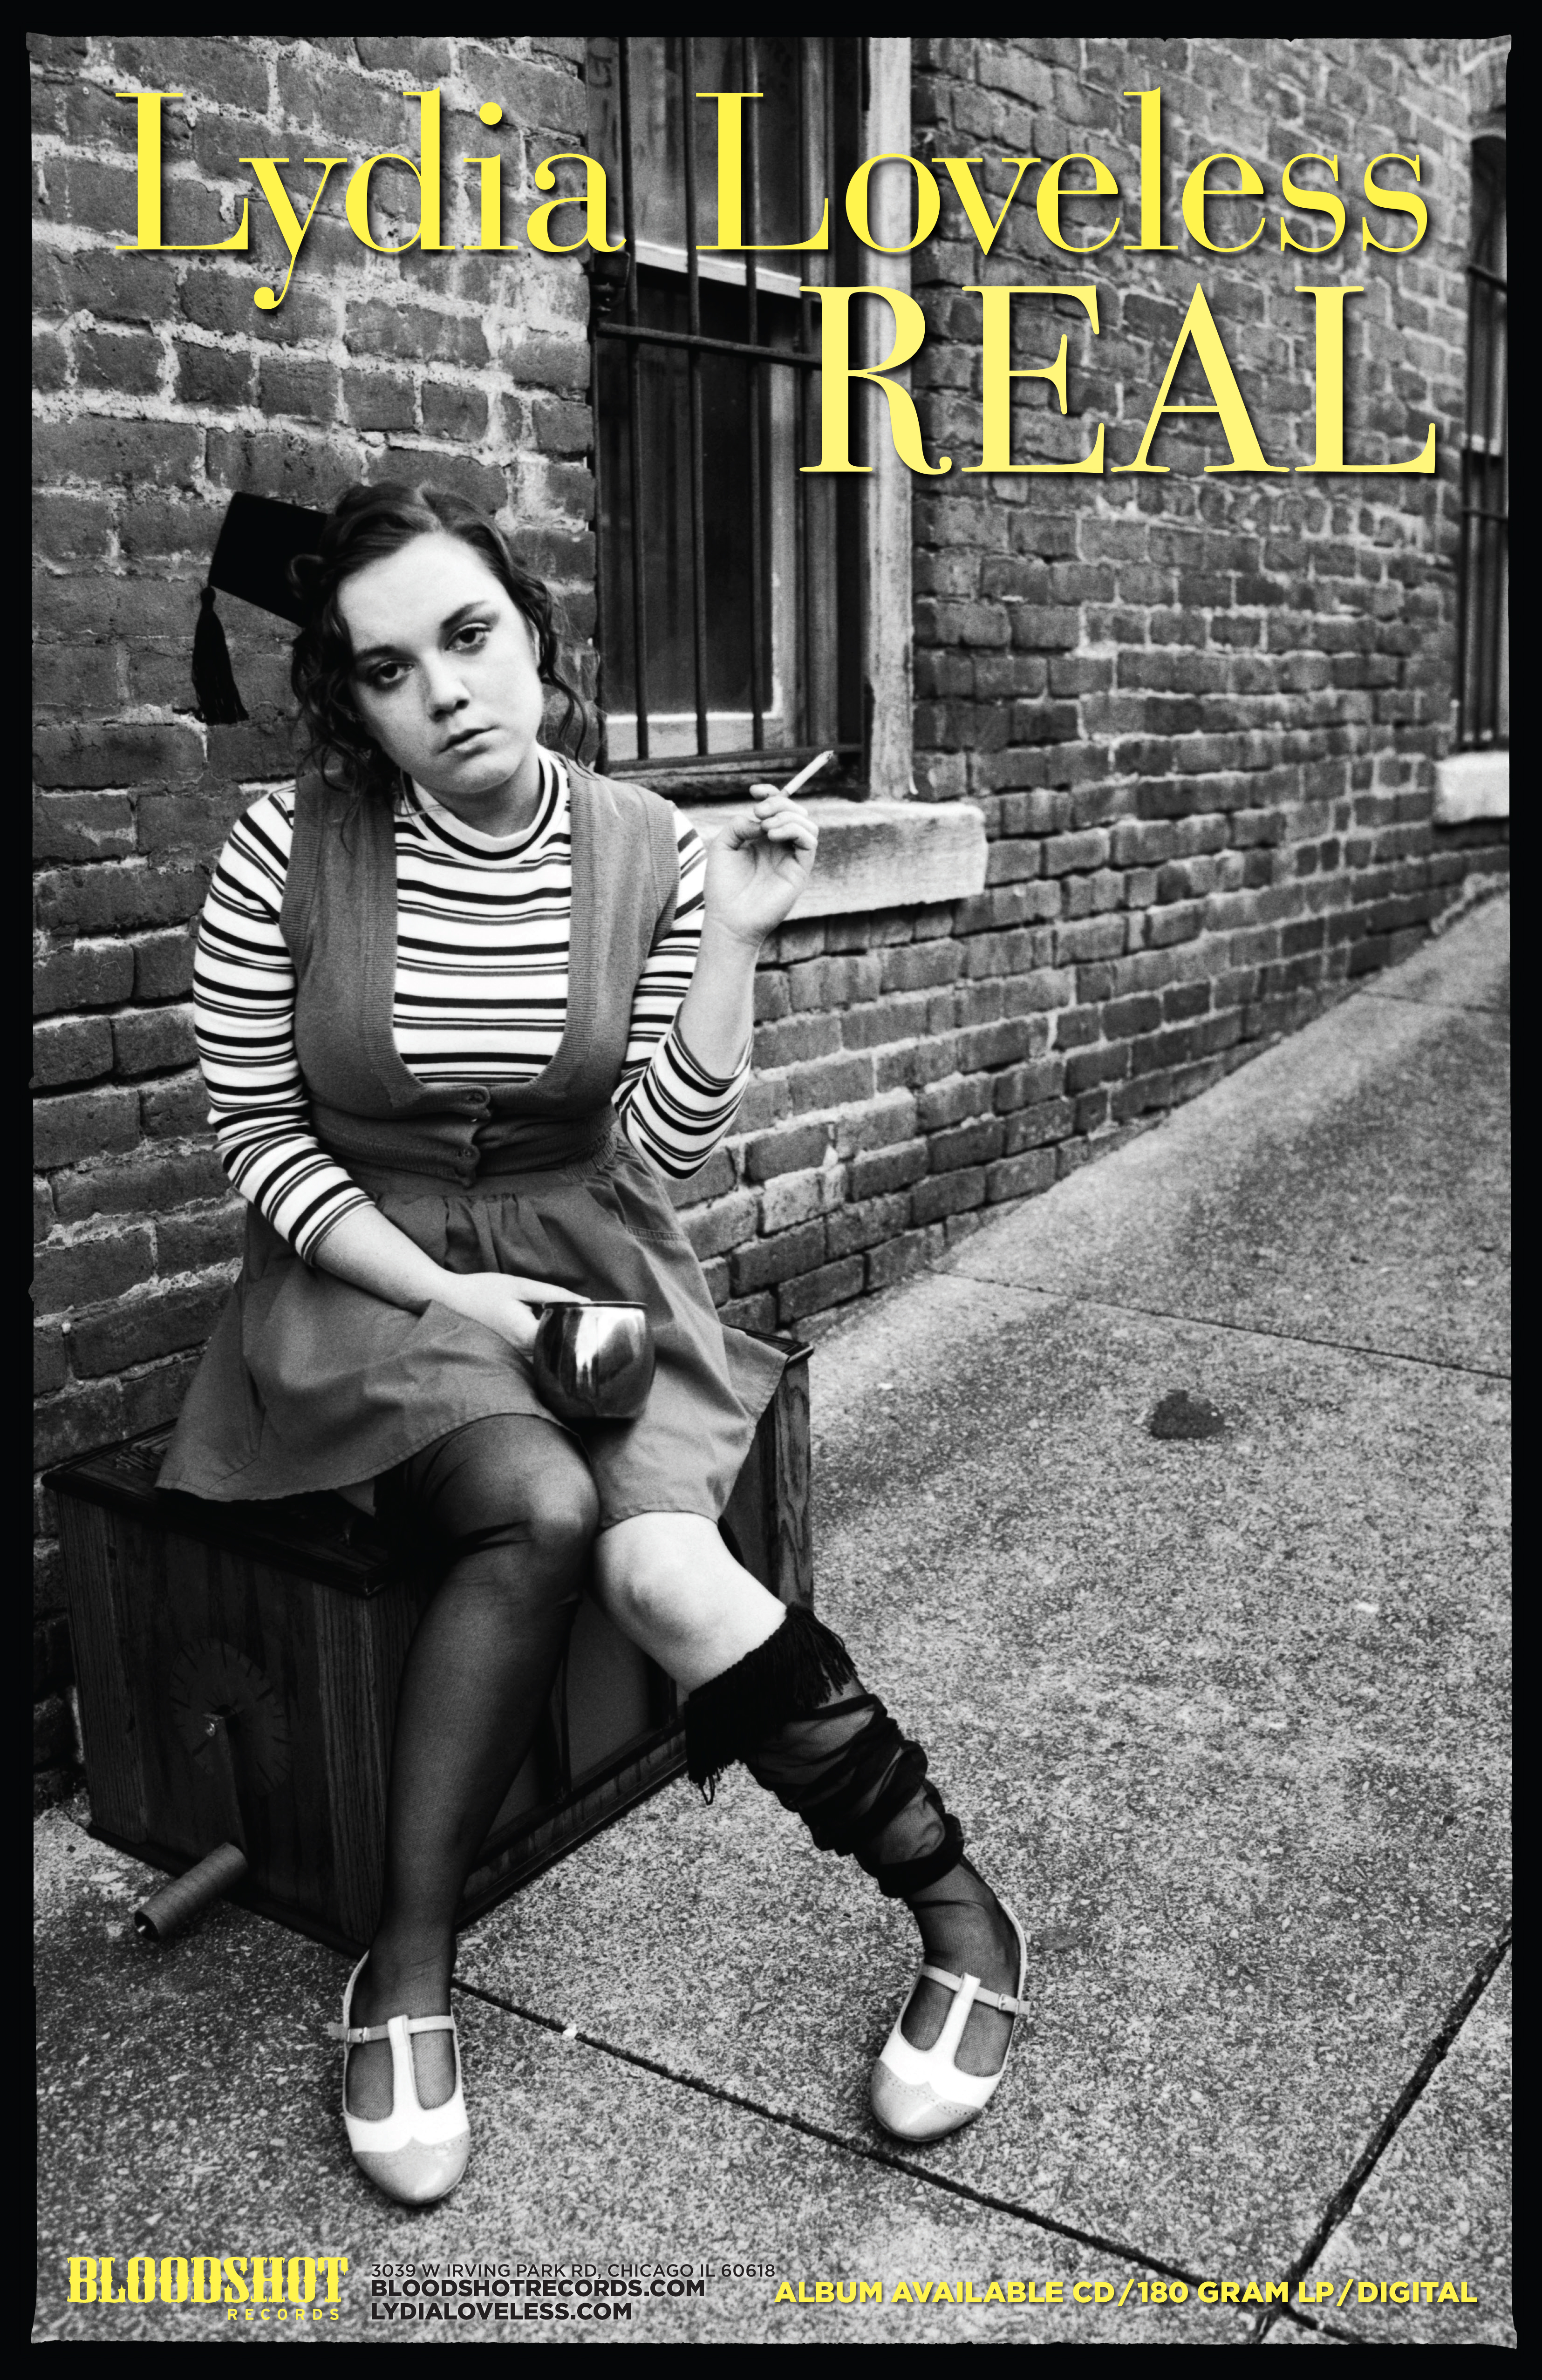 Lydia Loveless Real Album Poster Bloodshot Records